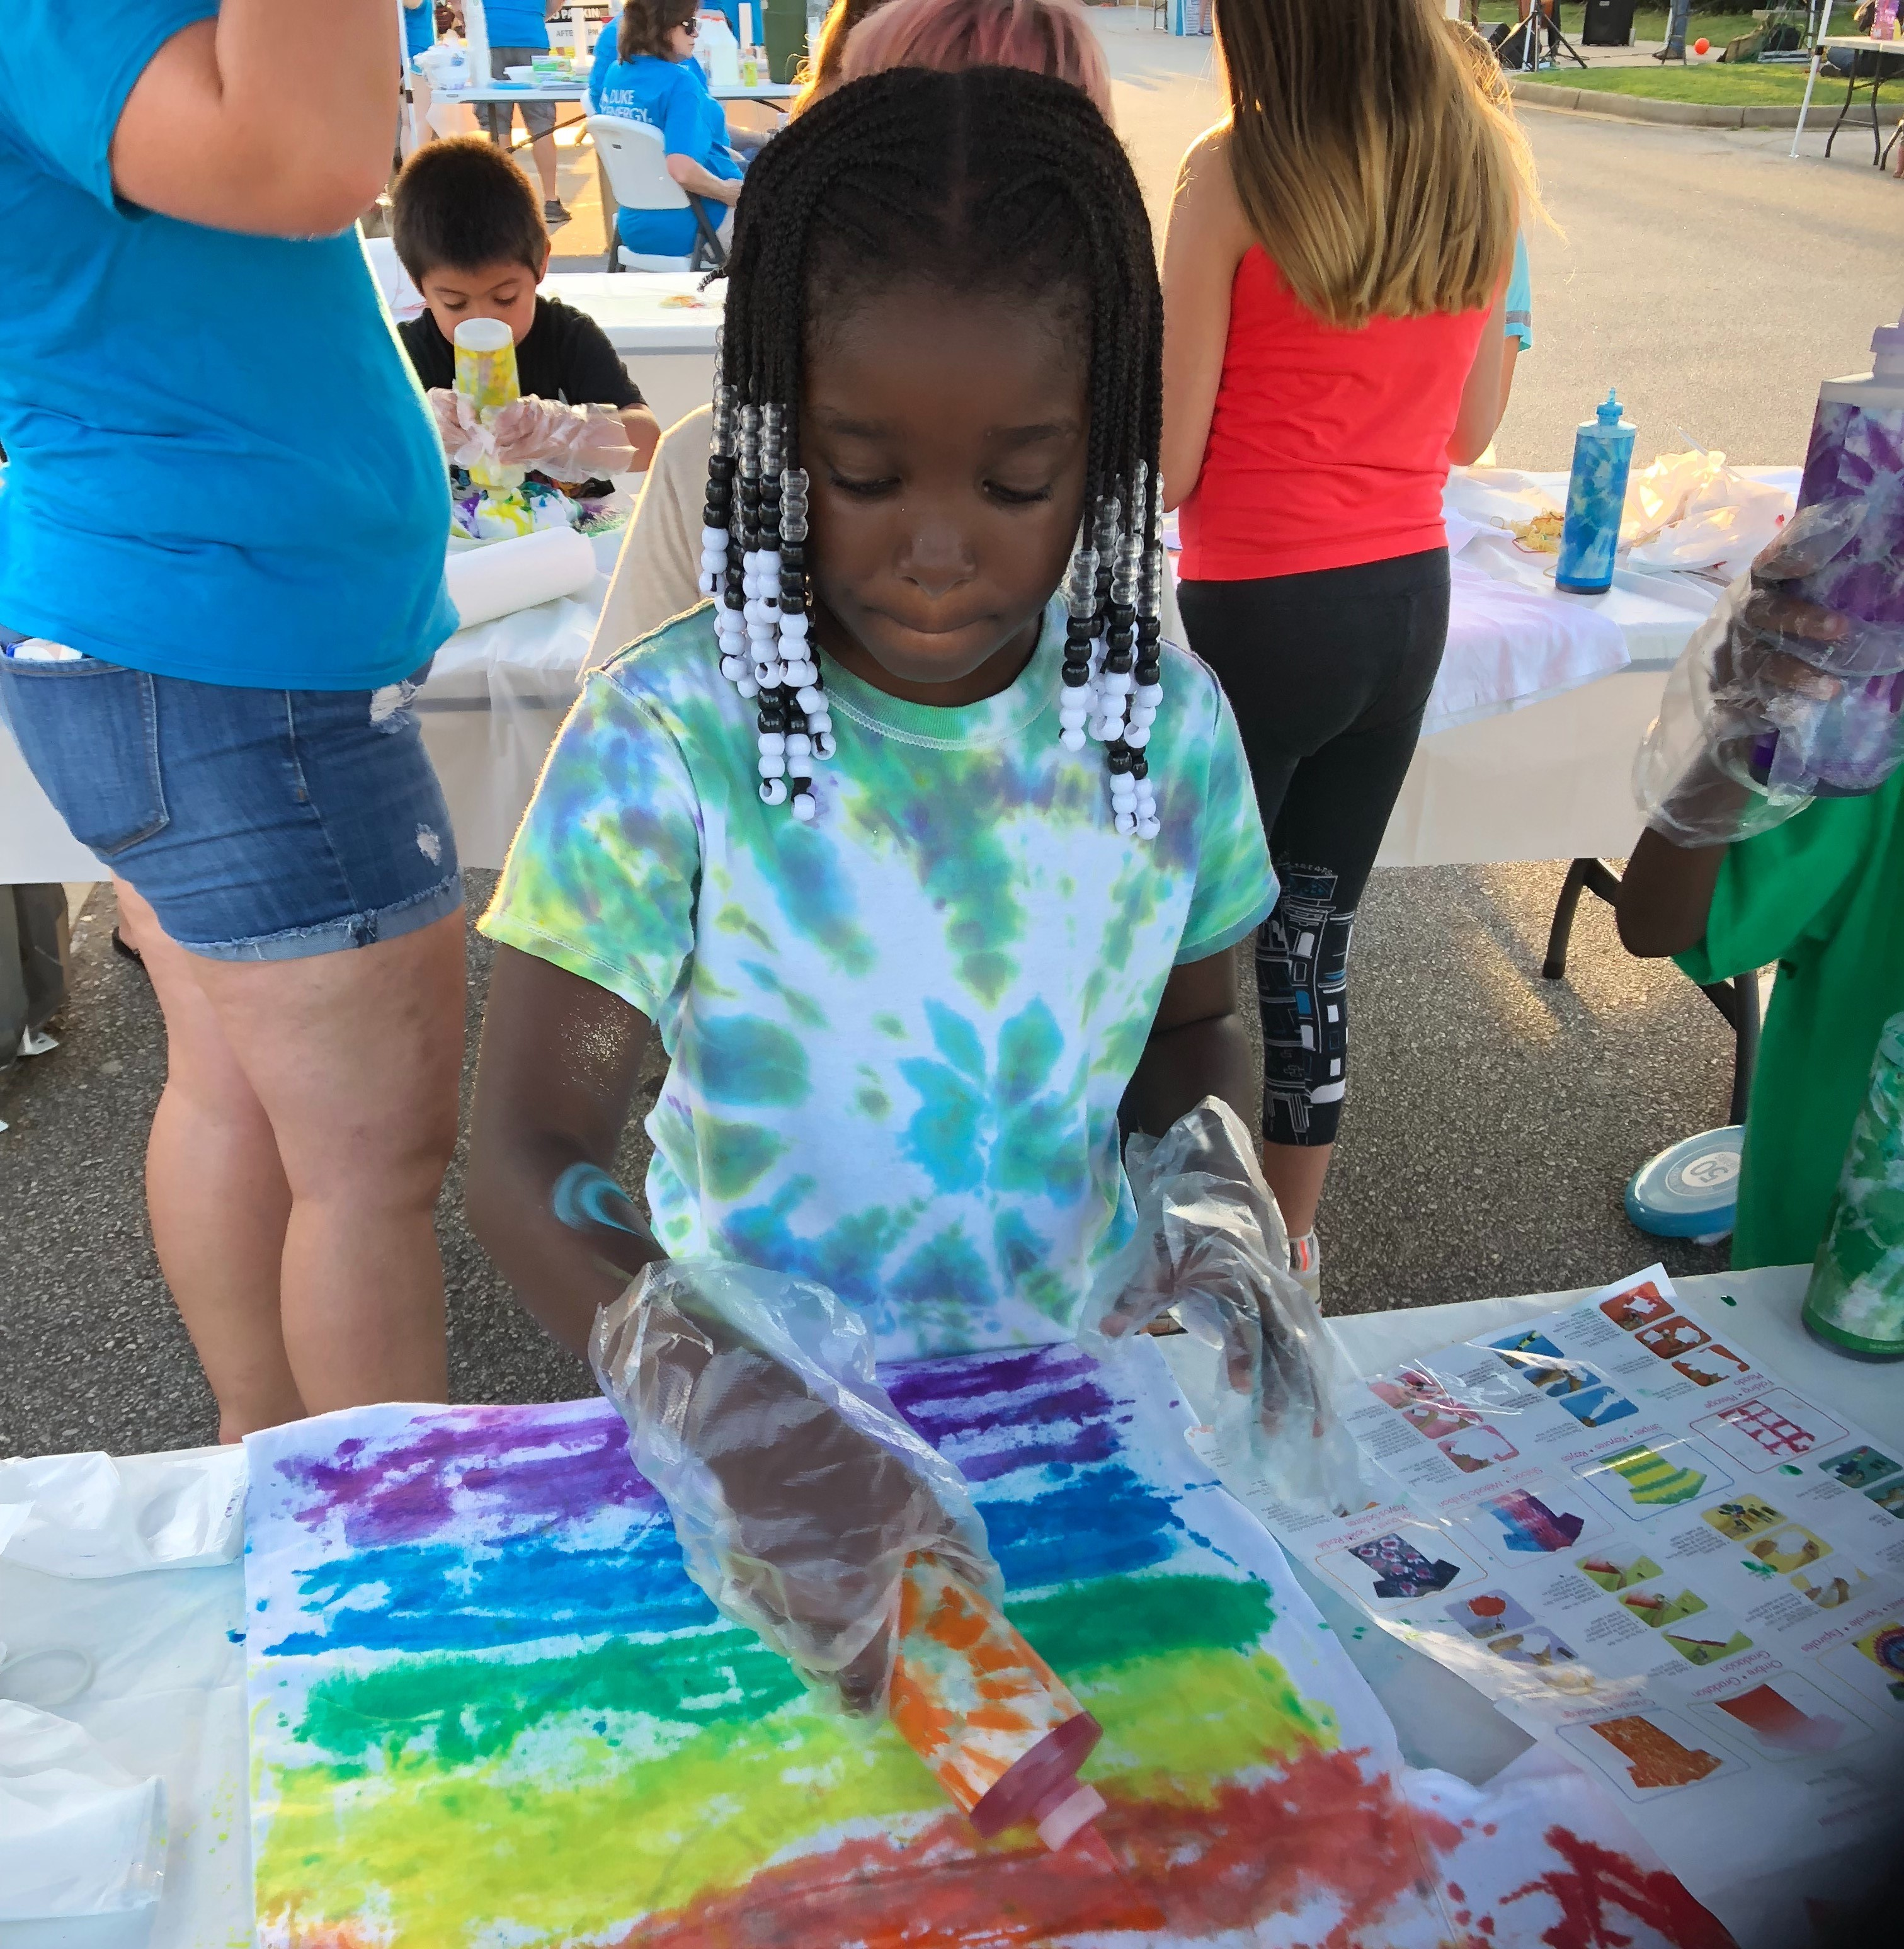 Tie-dying shirts at Duke Energy Night in Walhalla, S.C.